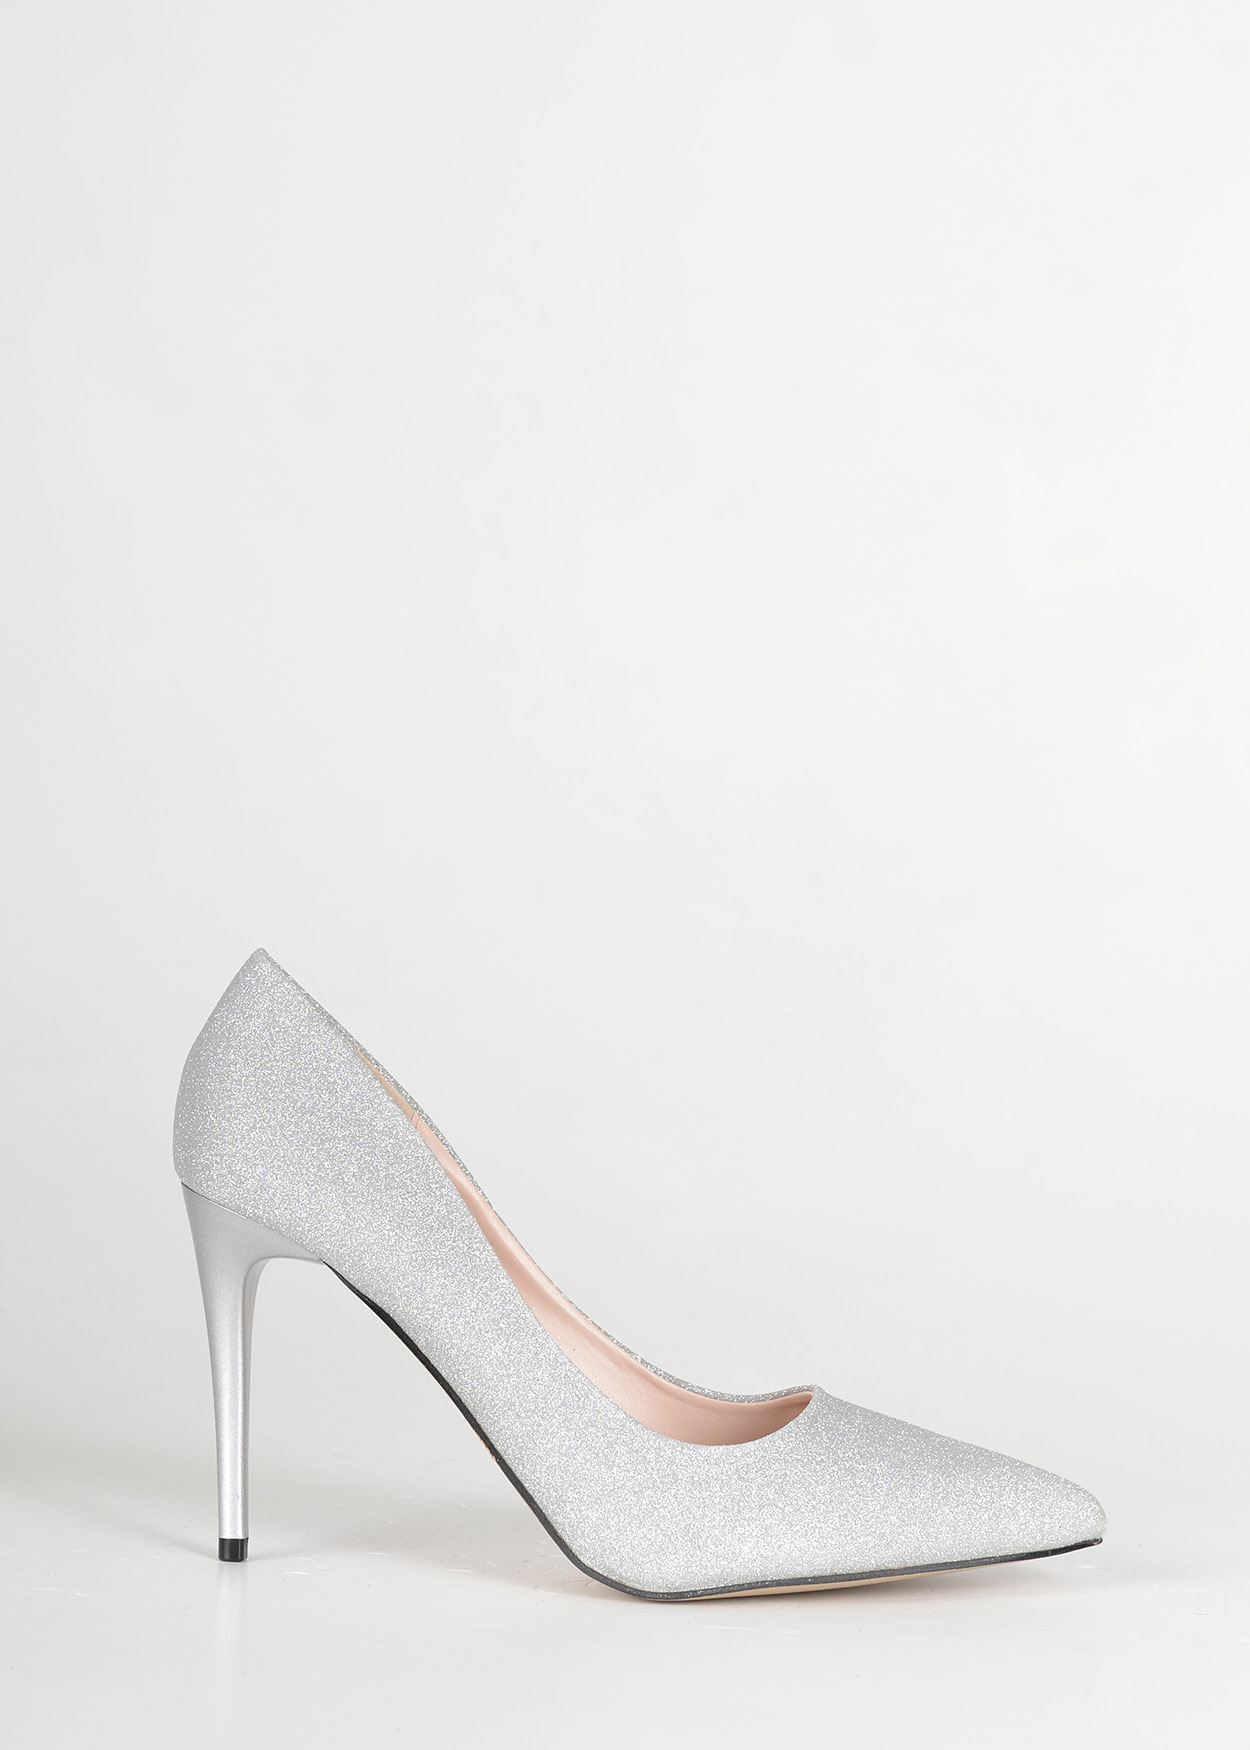 B0105 Silver pointed toe high heels